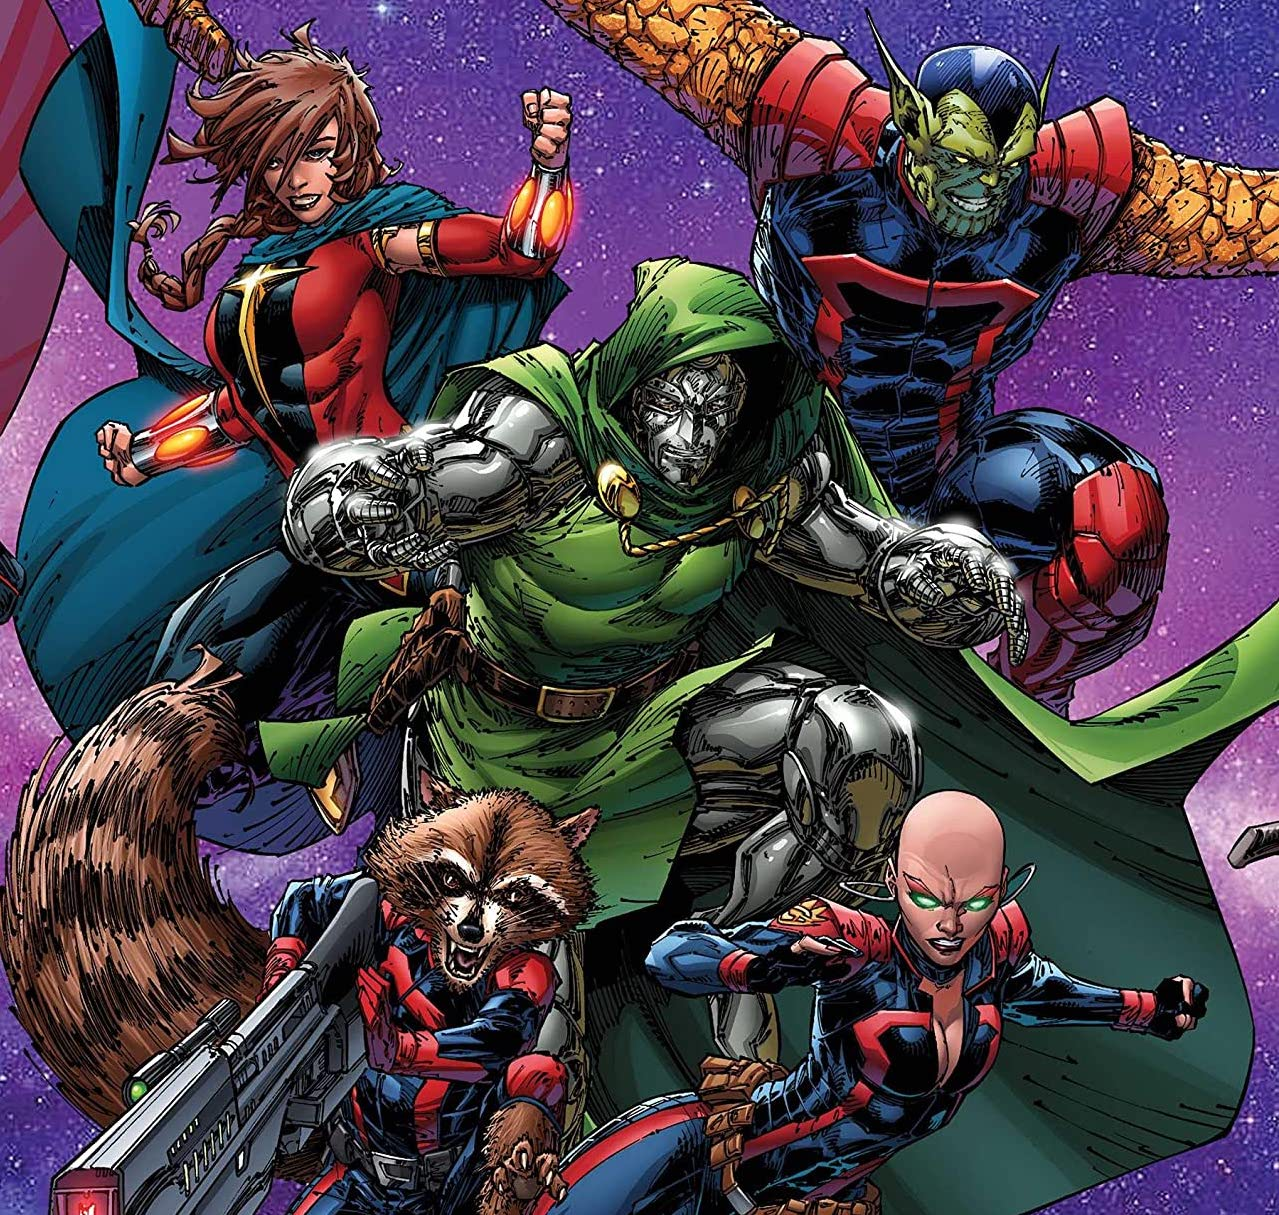 'Guardians of the Galaxy' #14 will excite longtime Marvel fans